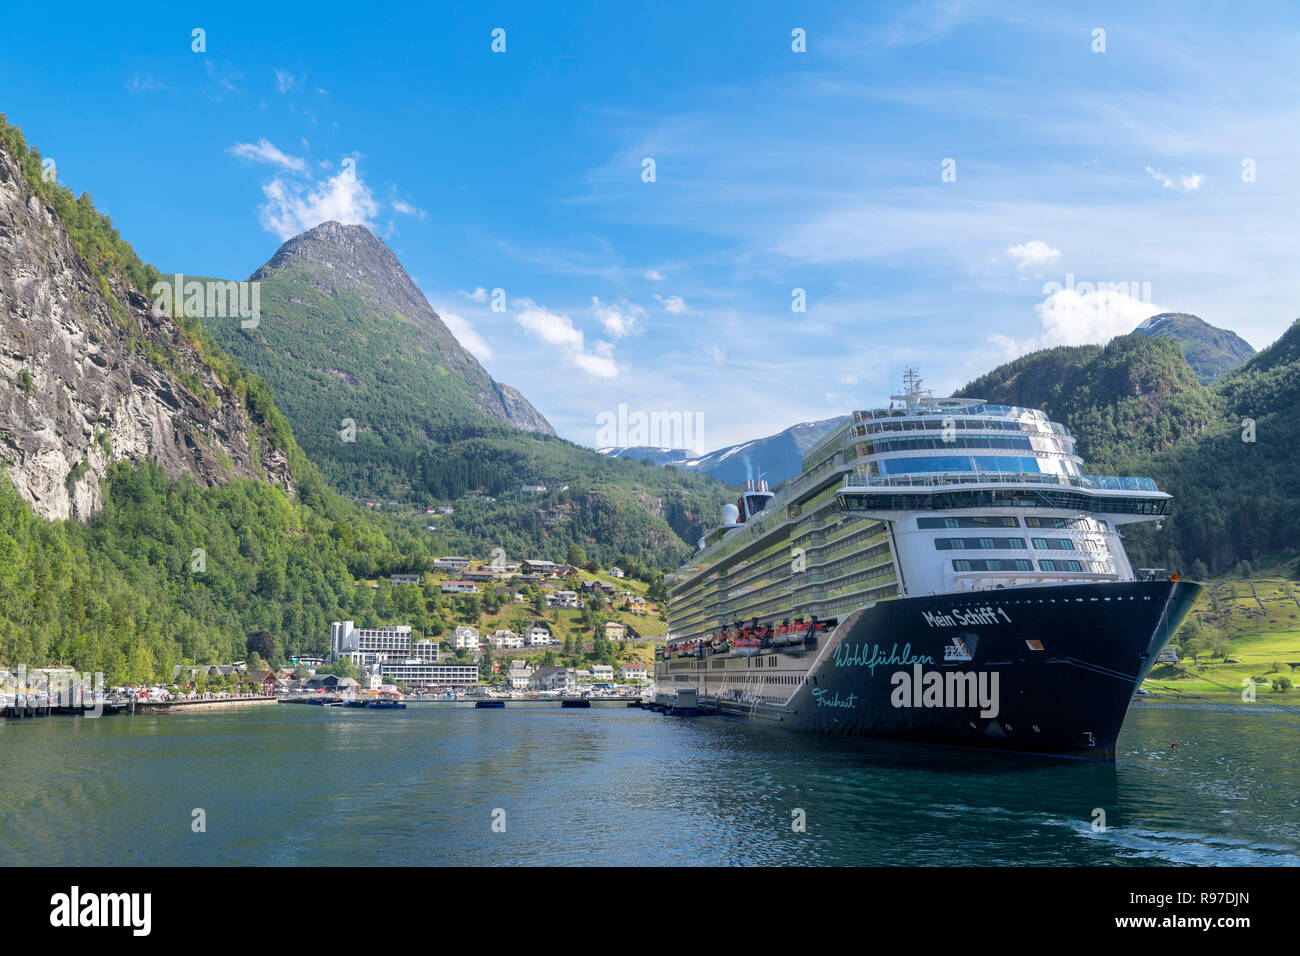 Tui Mein Schiff 1 (now Mariella Explorer) cruise ship in the harbour at Geiranger, Møre og Romsdal, Sunnmøre, Norway - Stock Image